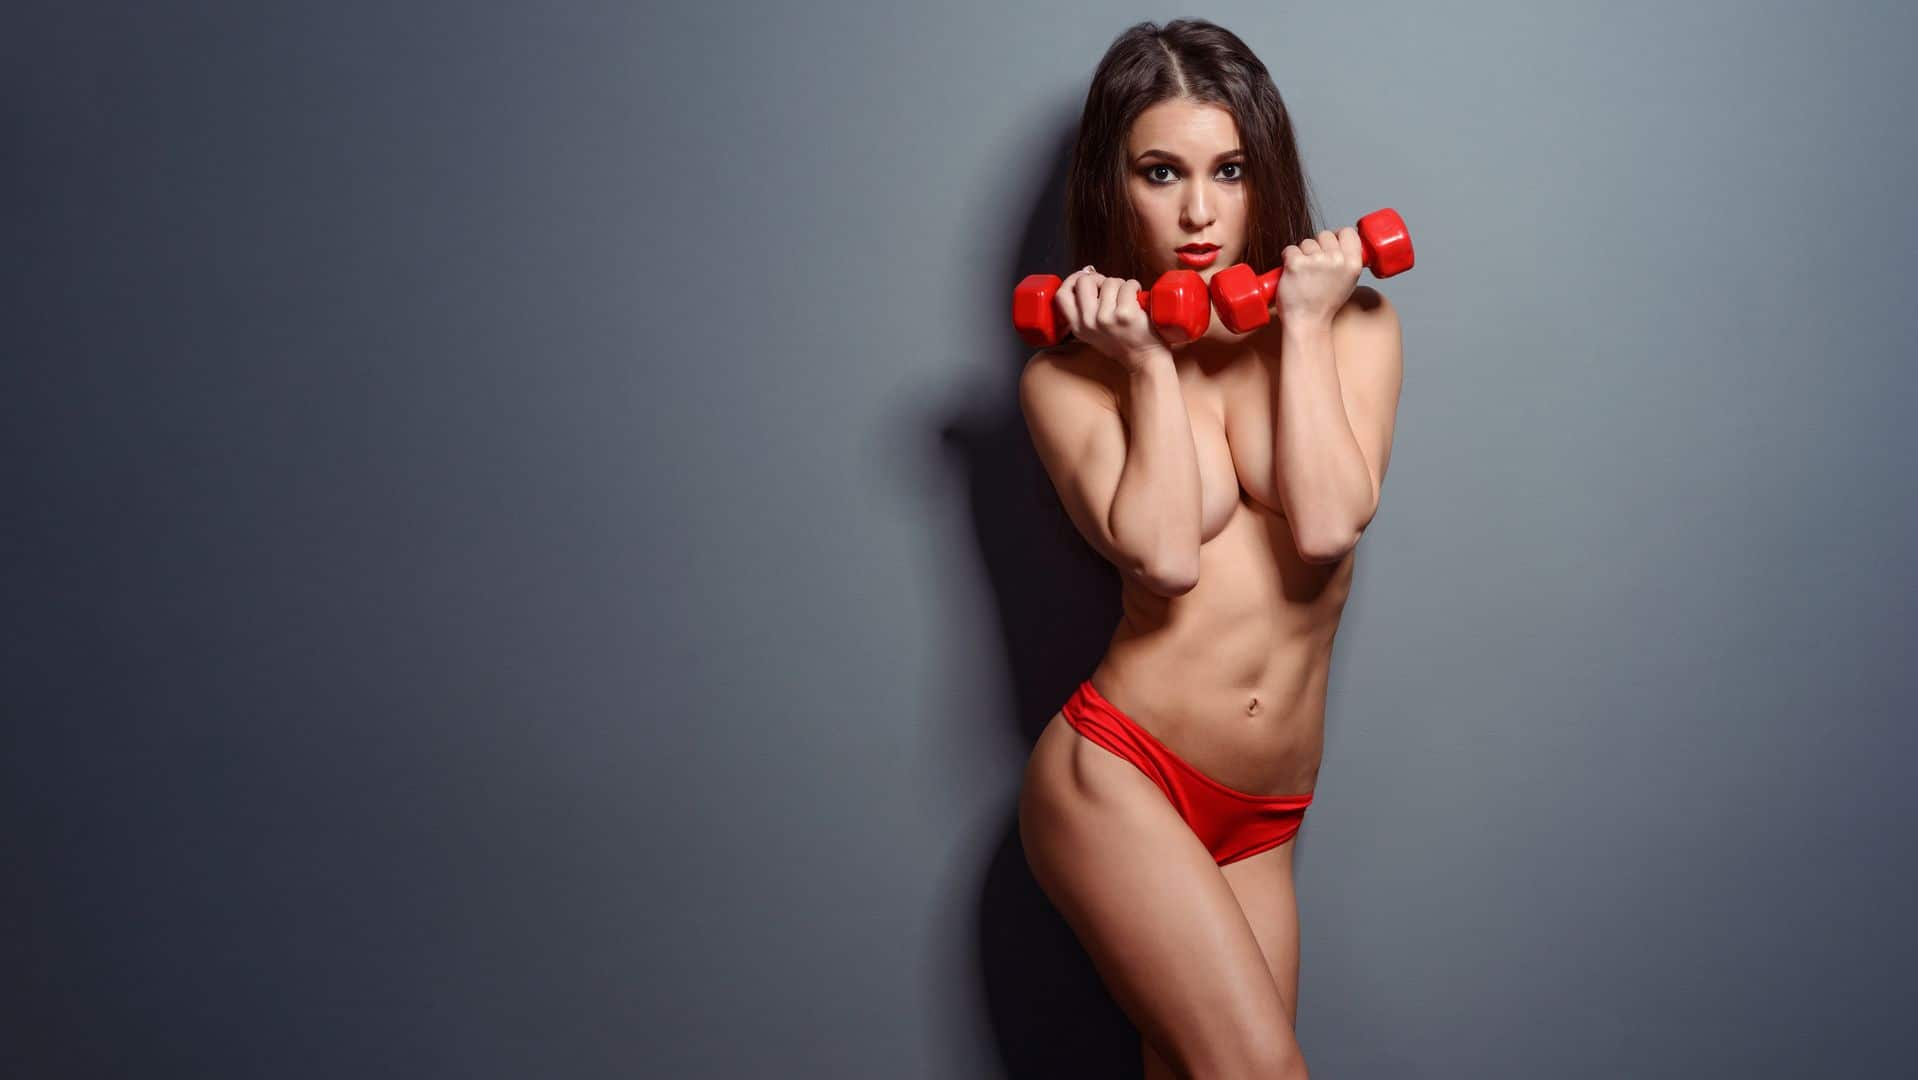 Top 20 Hot And Sexy Female Fitness Models With Links To Instagram Women fitness models, pics, female muscle, motivation, tips, videos & humour. hot and sexy female fitness models